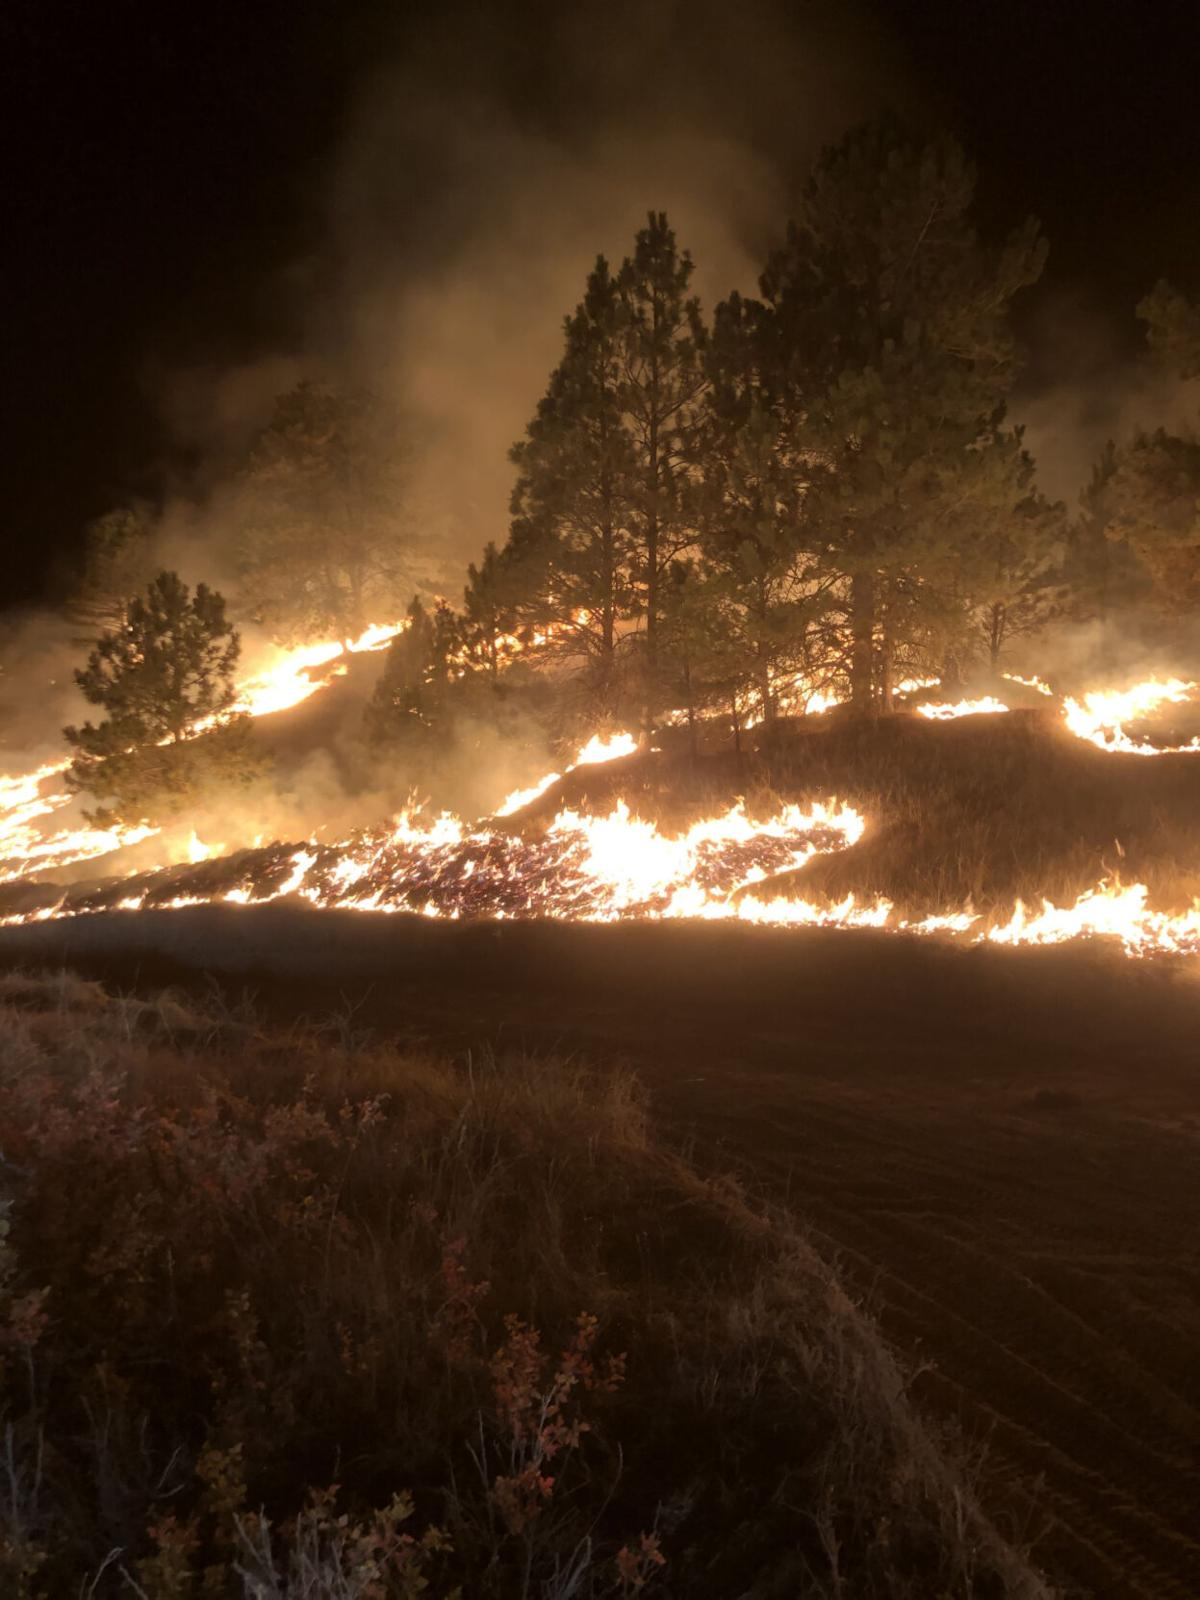 New York crews go West each year to help fight wildfires